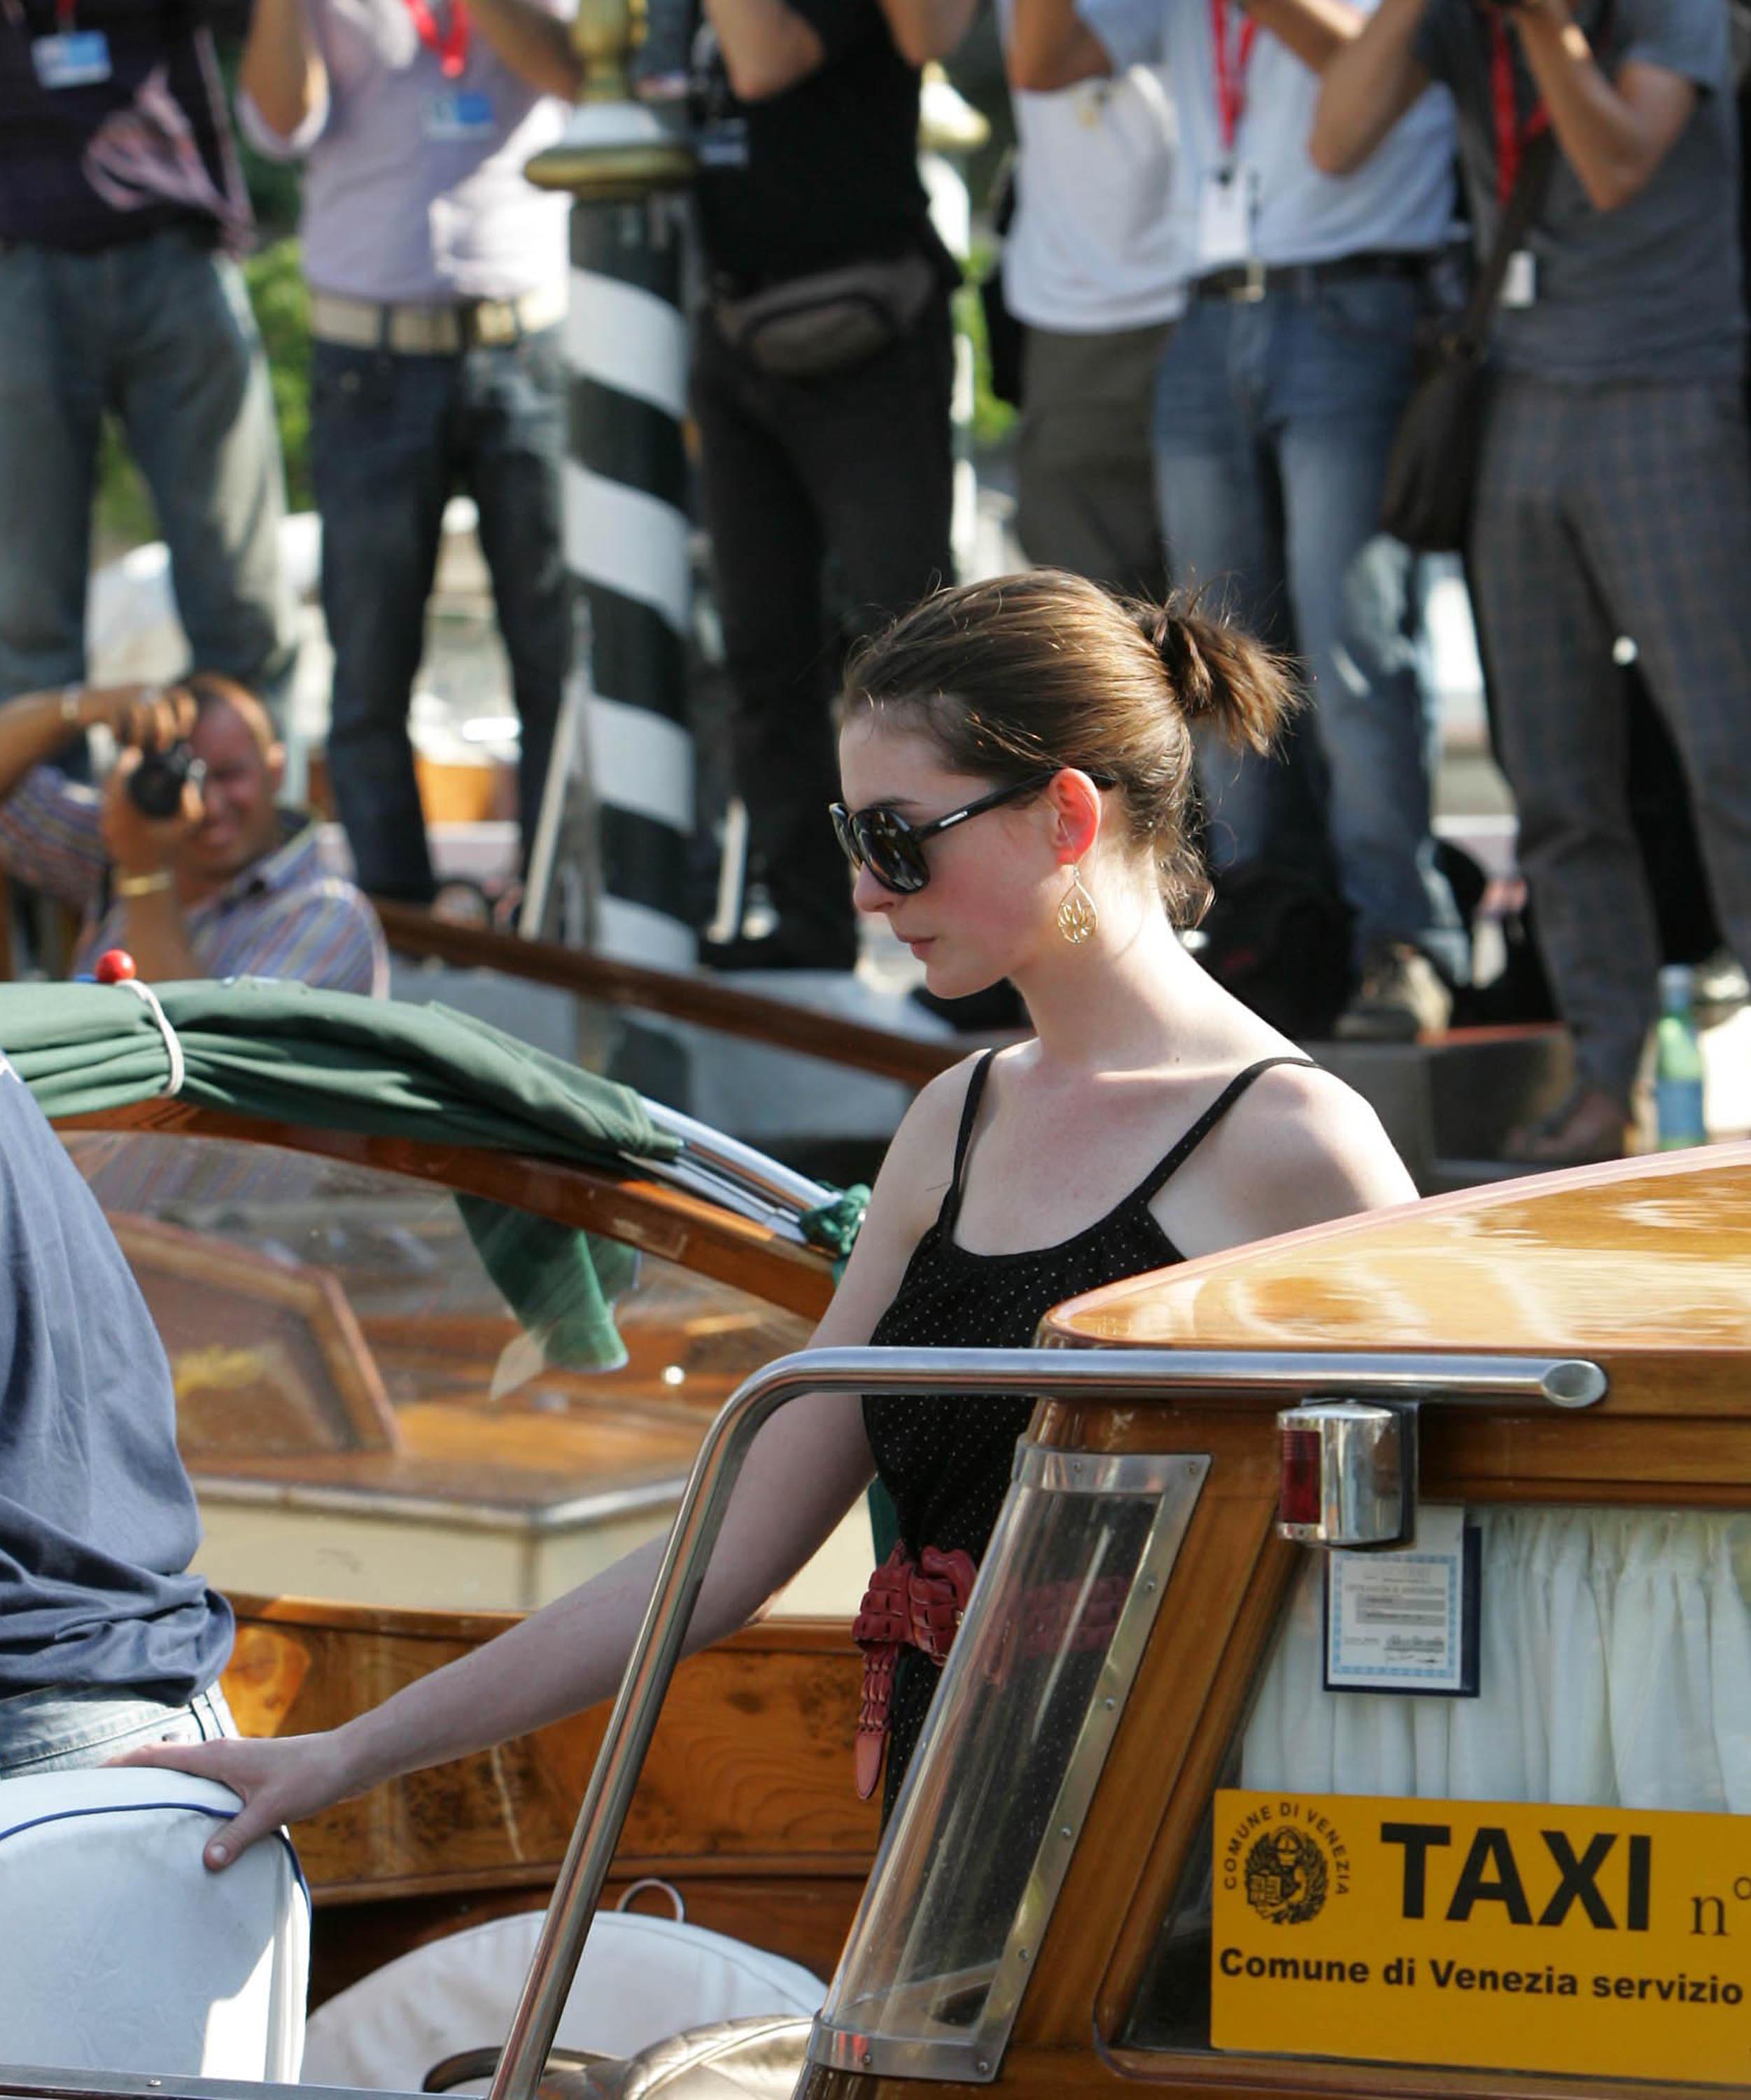 26325_Anne_Hathaway_arriving_at_the_airport_in_Venice-03_122_557lo.jpg